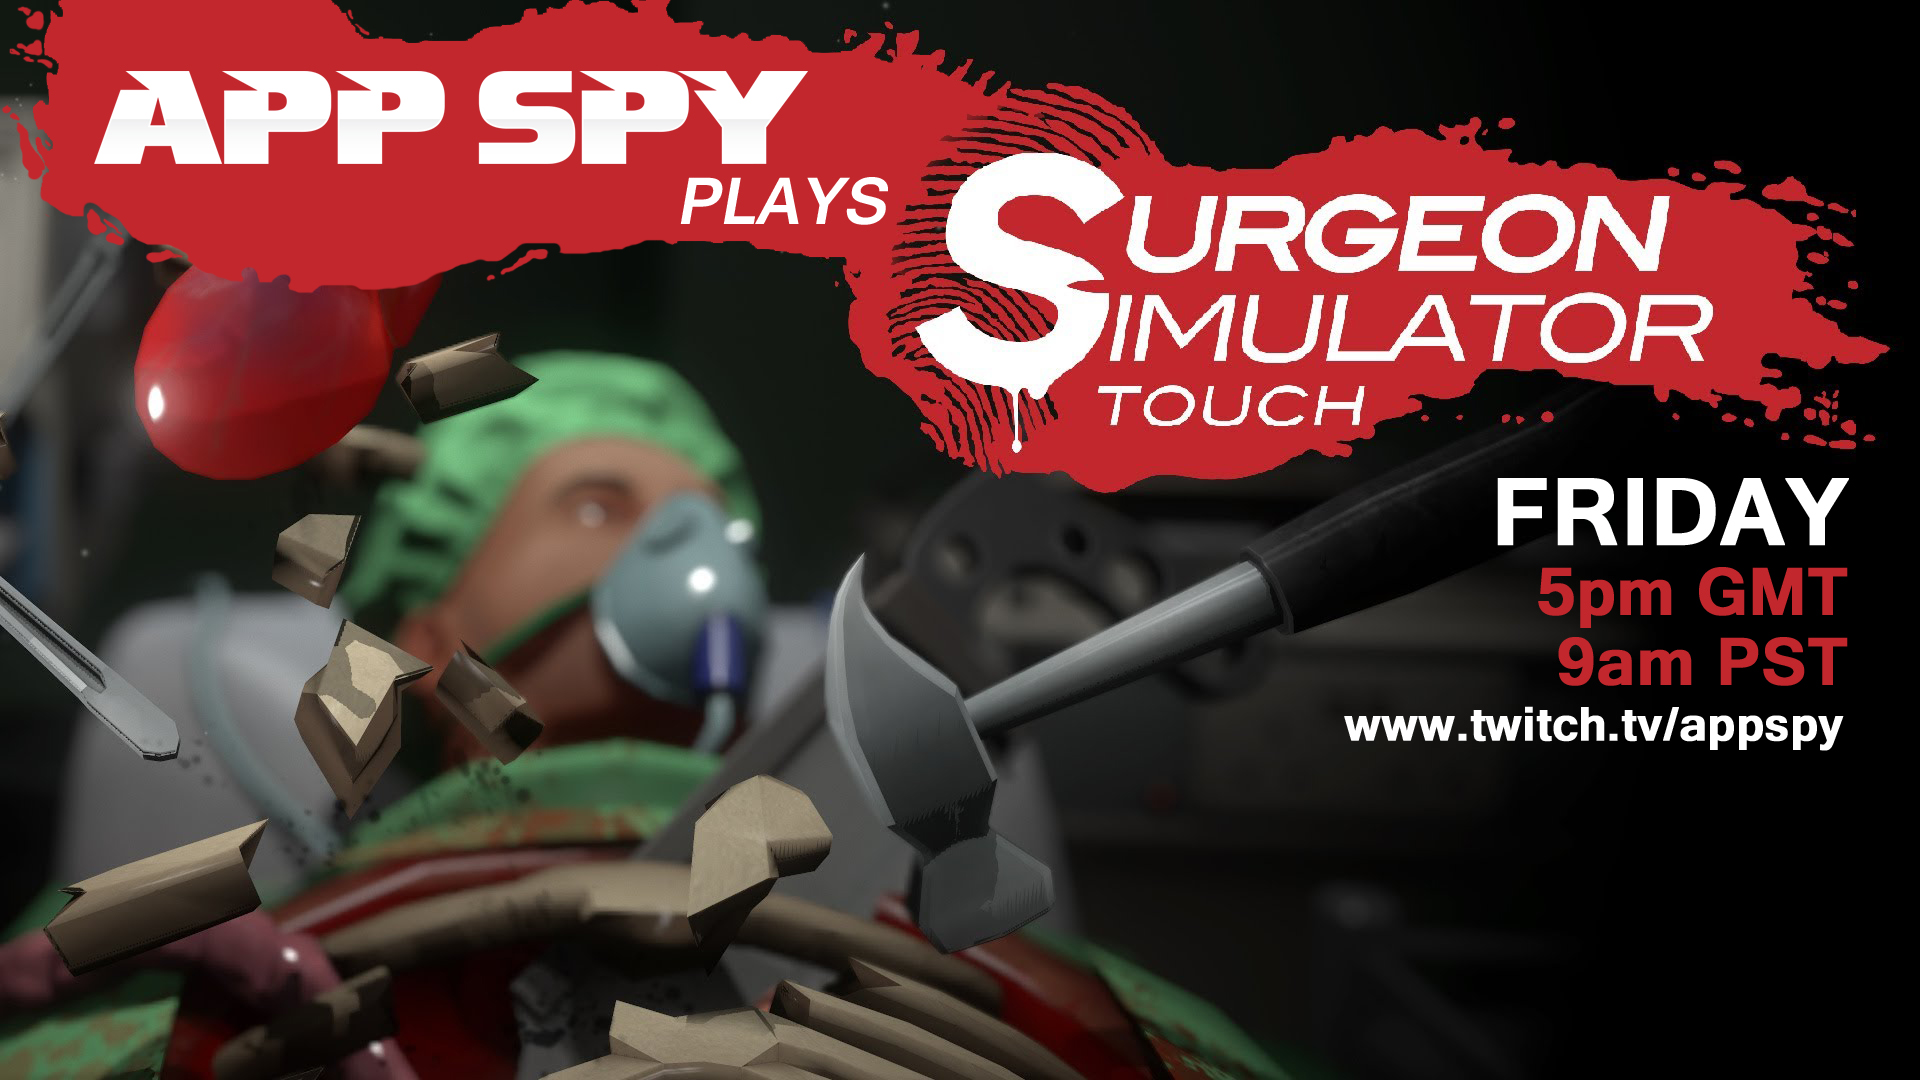 AppSpy will be streaming Surgeon Simulator on Twitch at 5pm GMT / 9am PST